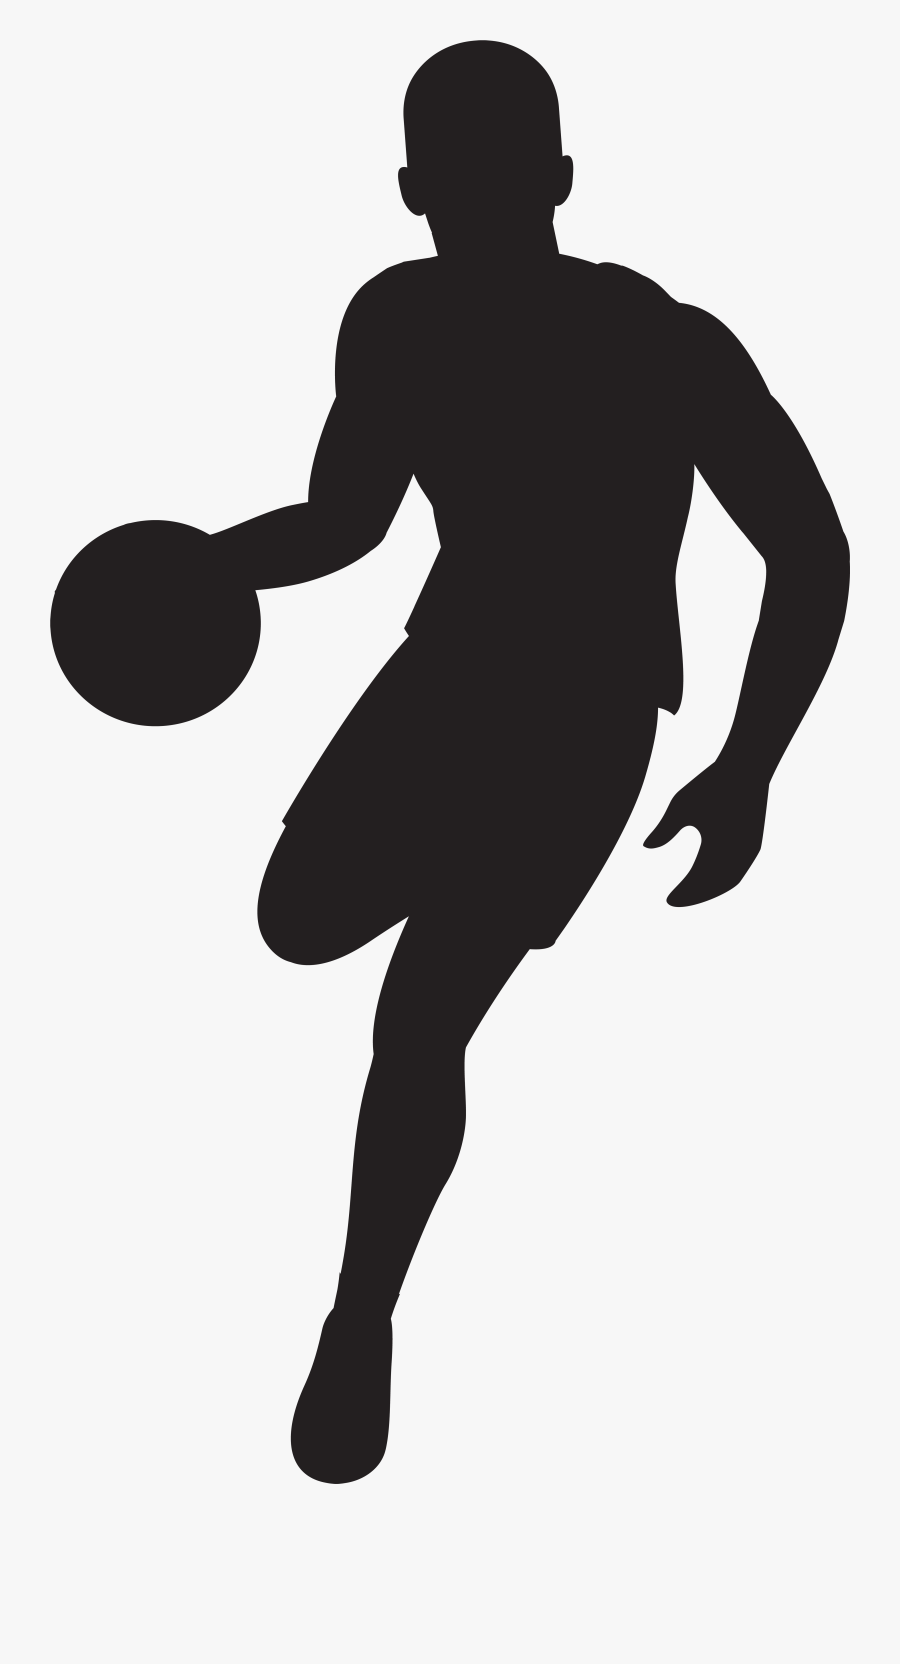 Player Silhouette Clip Art - Silhouette Basketball Player Clipart, Transparent Clipart